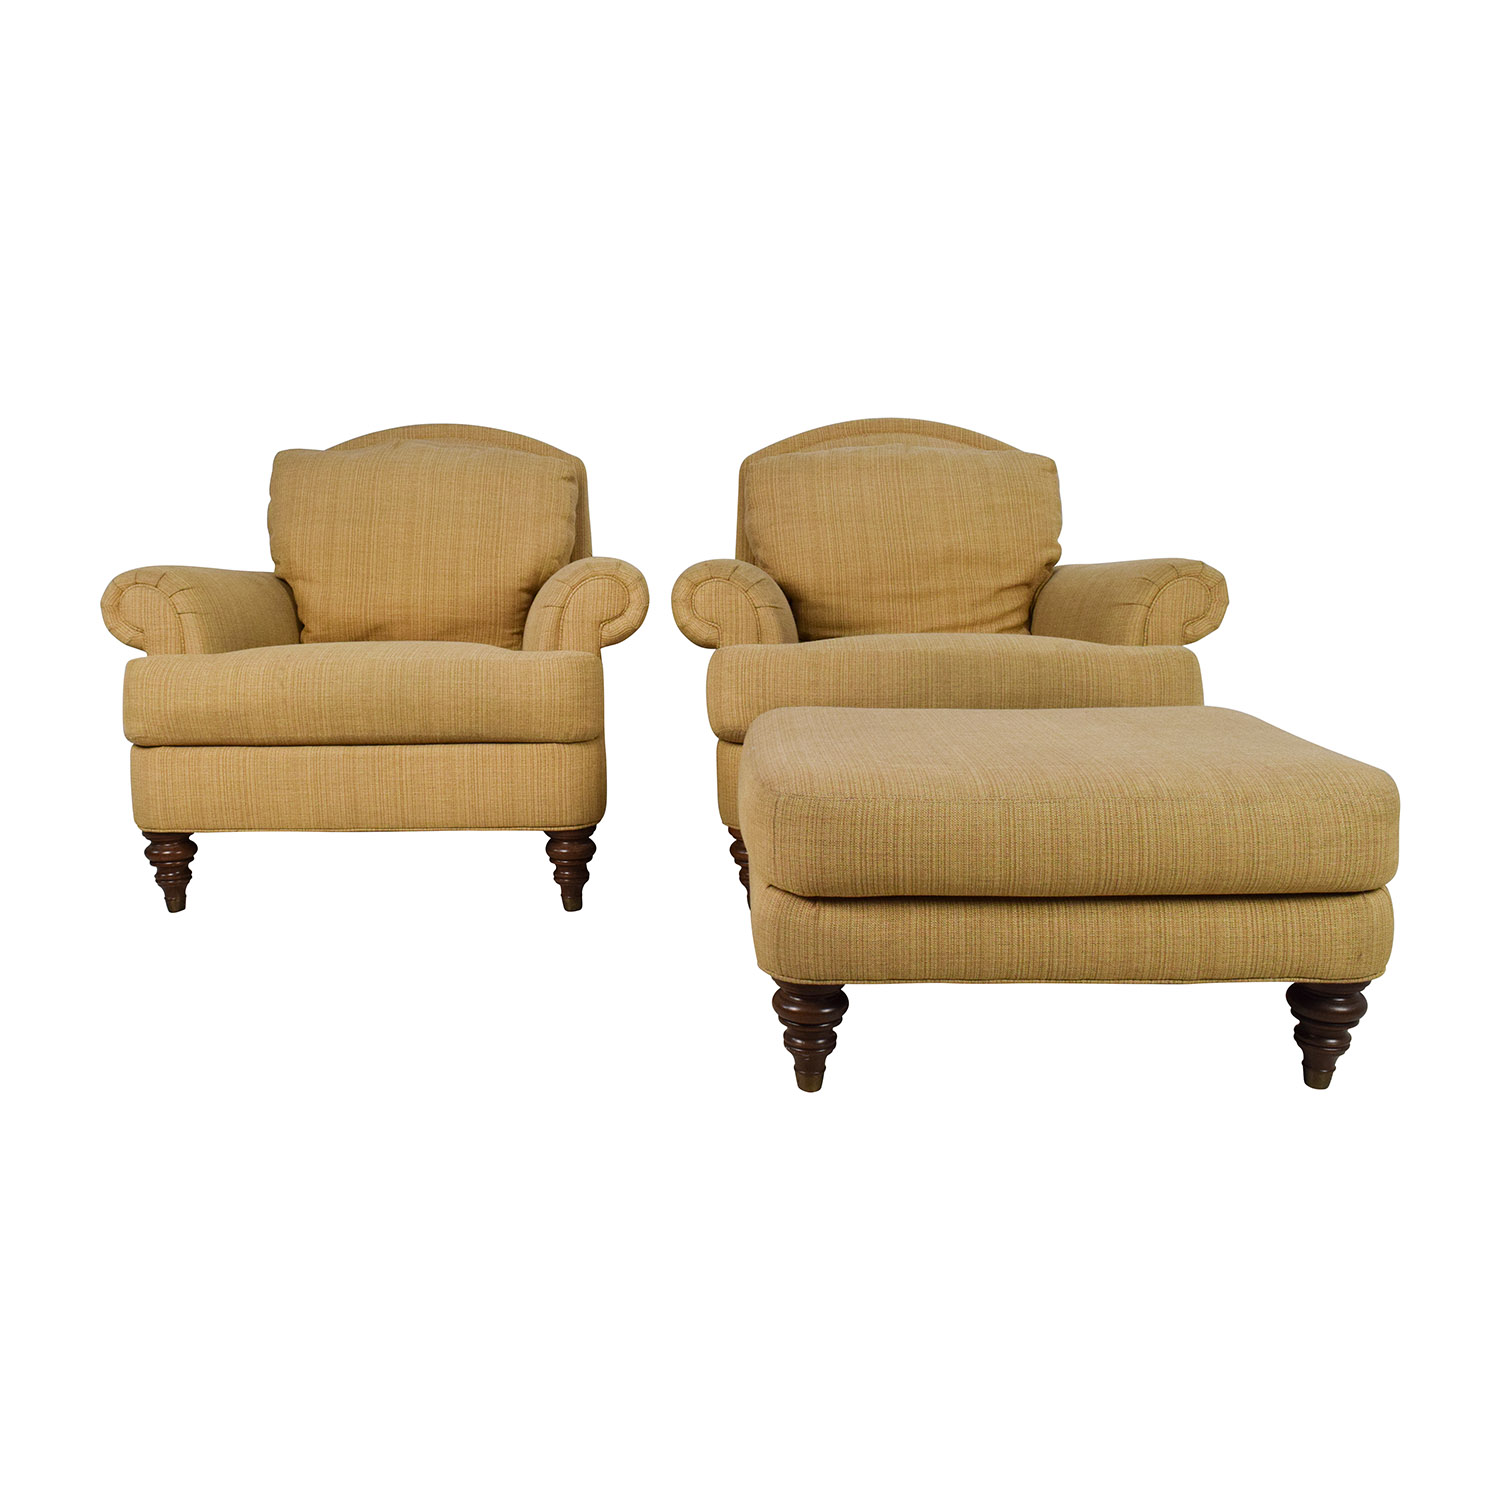 Accent Chairs Sold In Pairs.89 Off Ethan Allen Ethan Allen Hyde Chair Pair And Single Ottoman Chairs